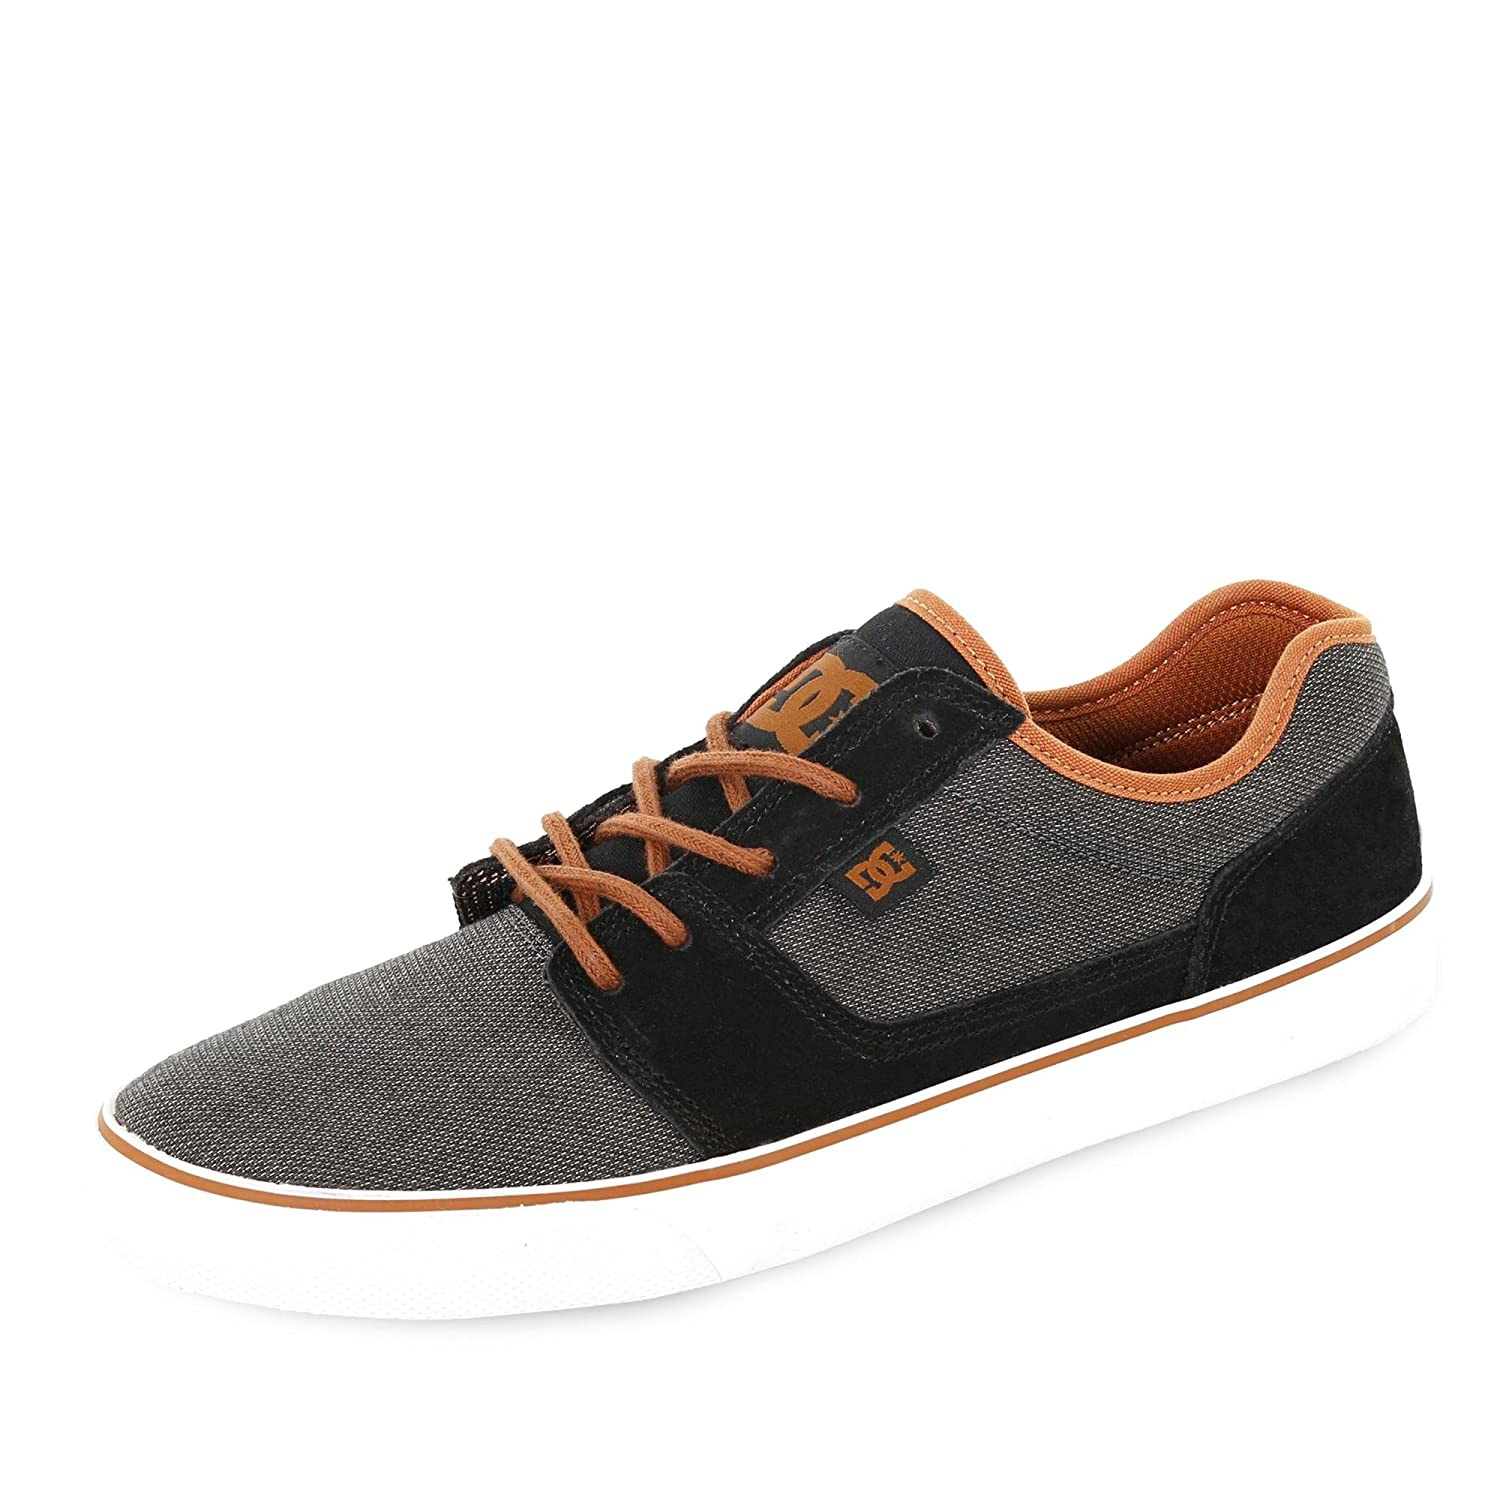 Du Commerce Chaussures Cart Zen L'art E Cx8ztq8